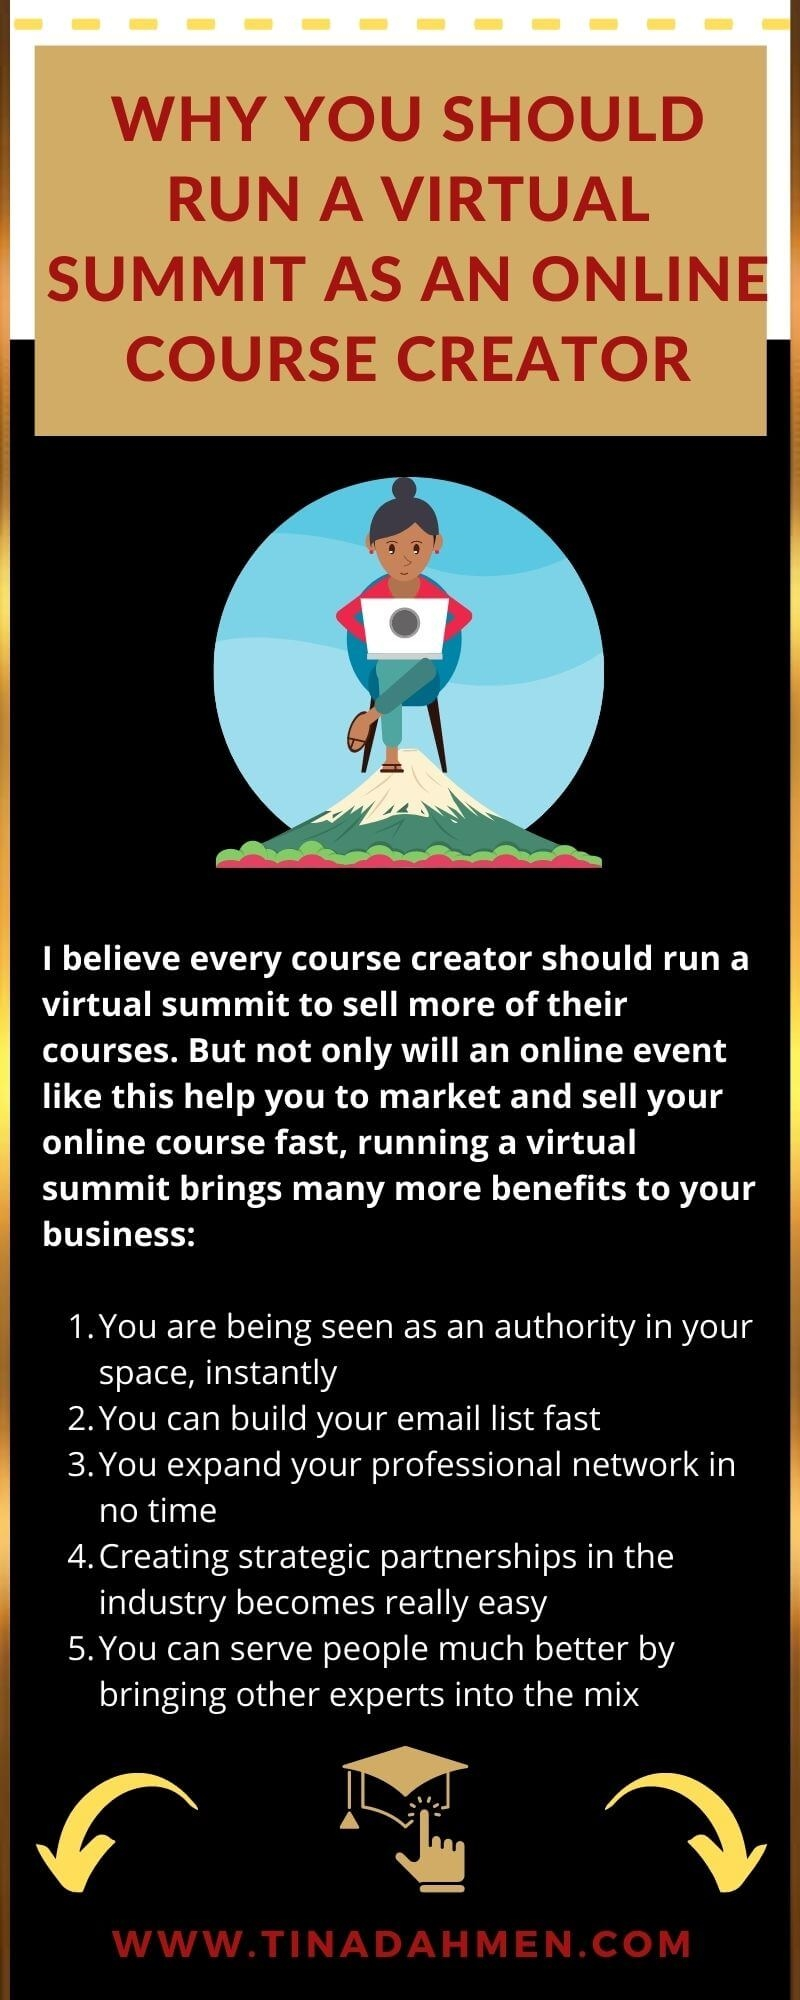 Why You Should Run a Virtual Summit As An Online Course Creator